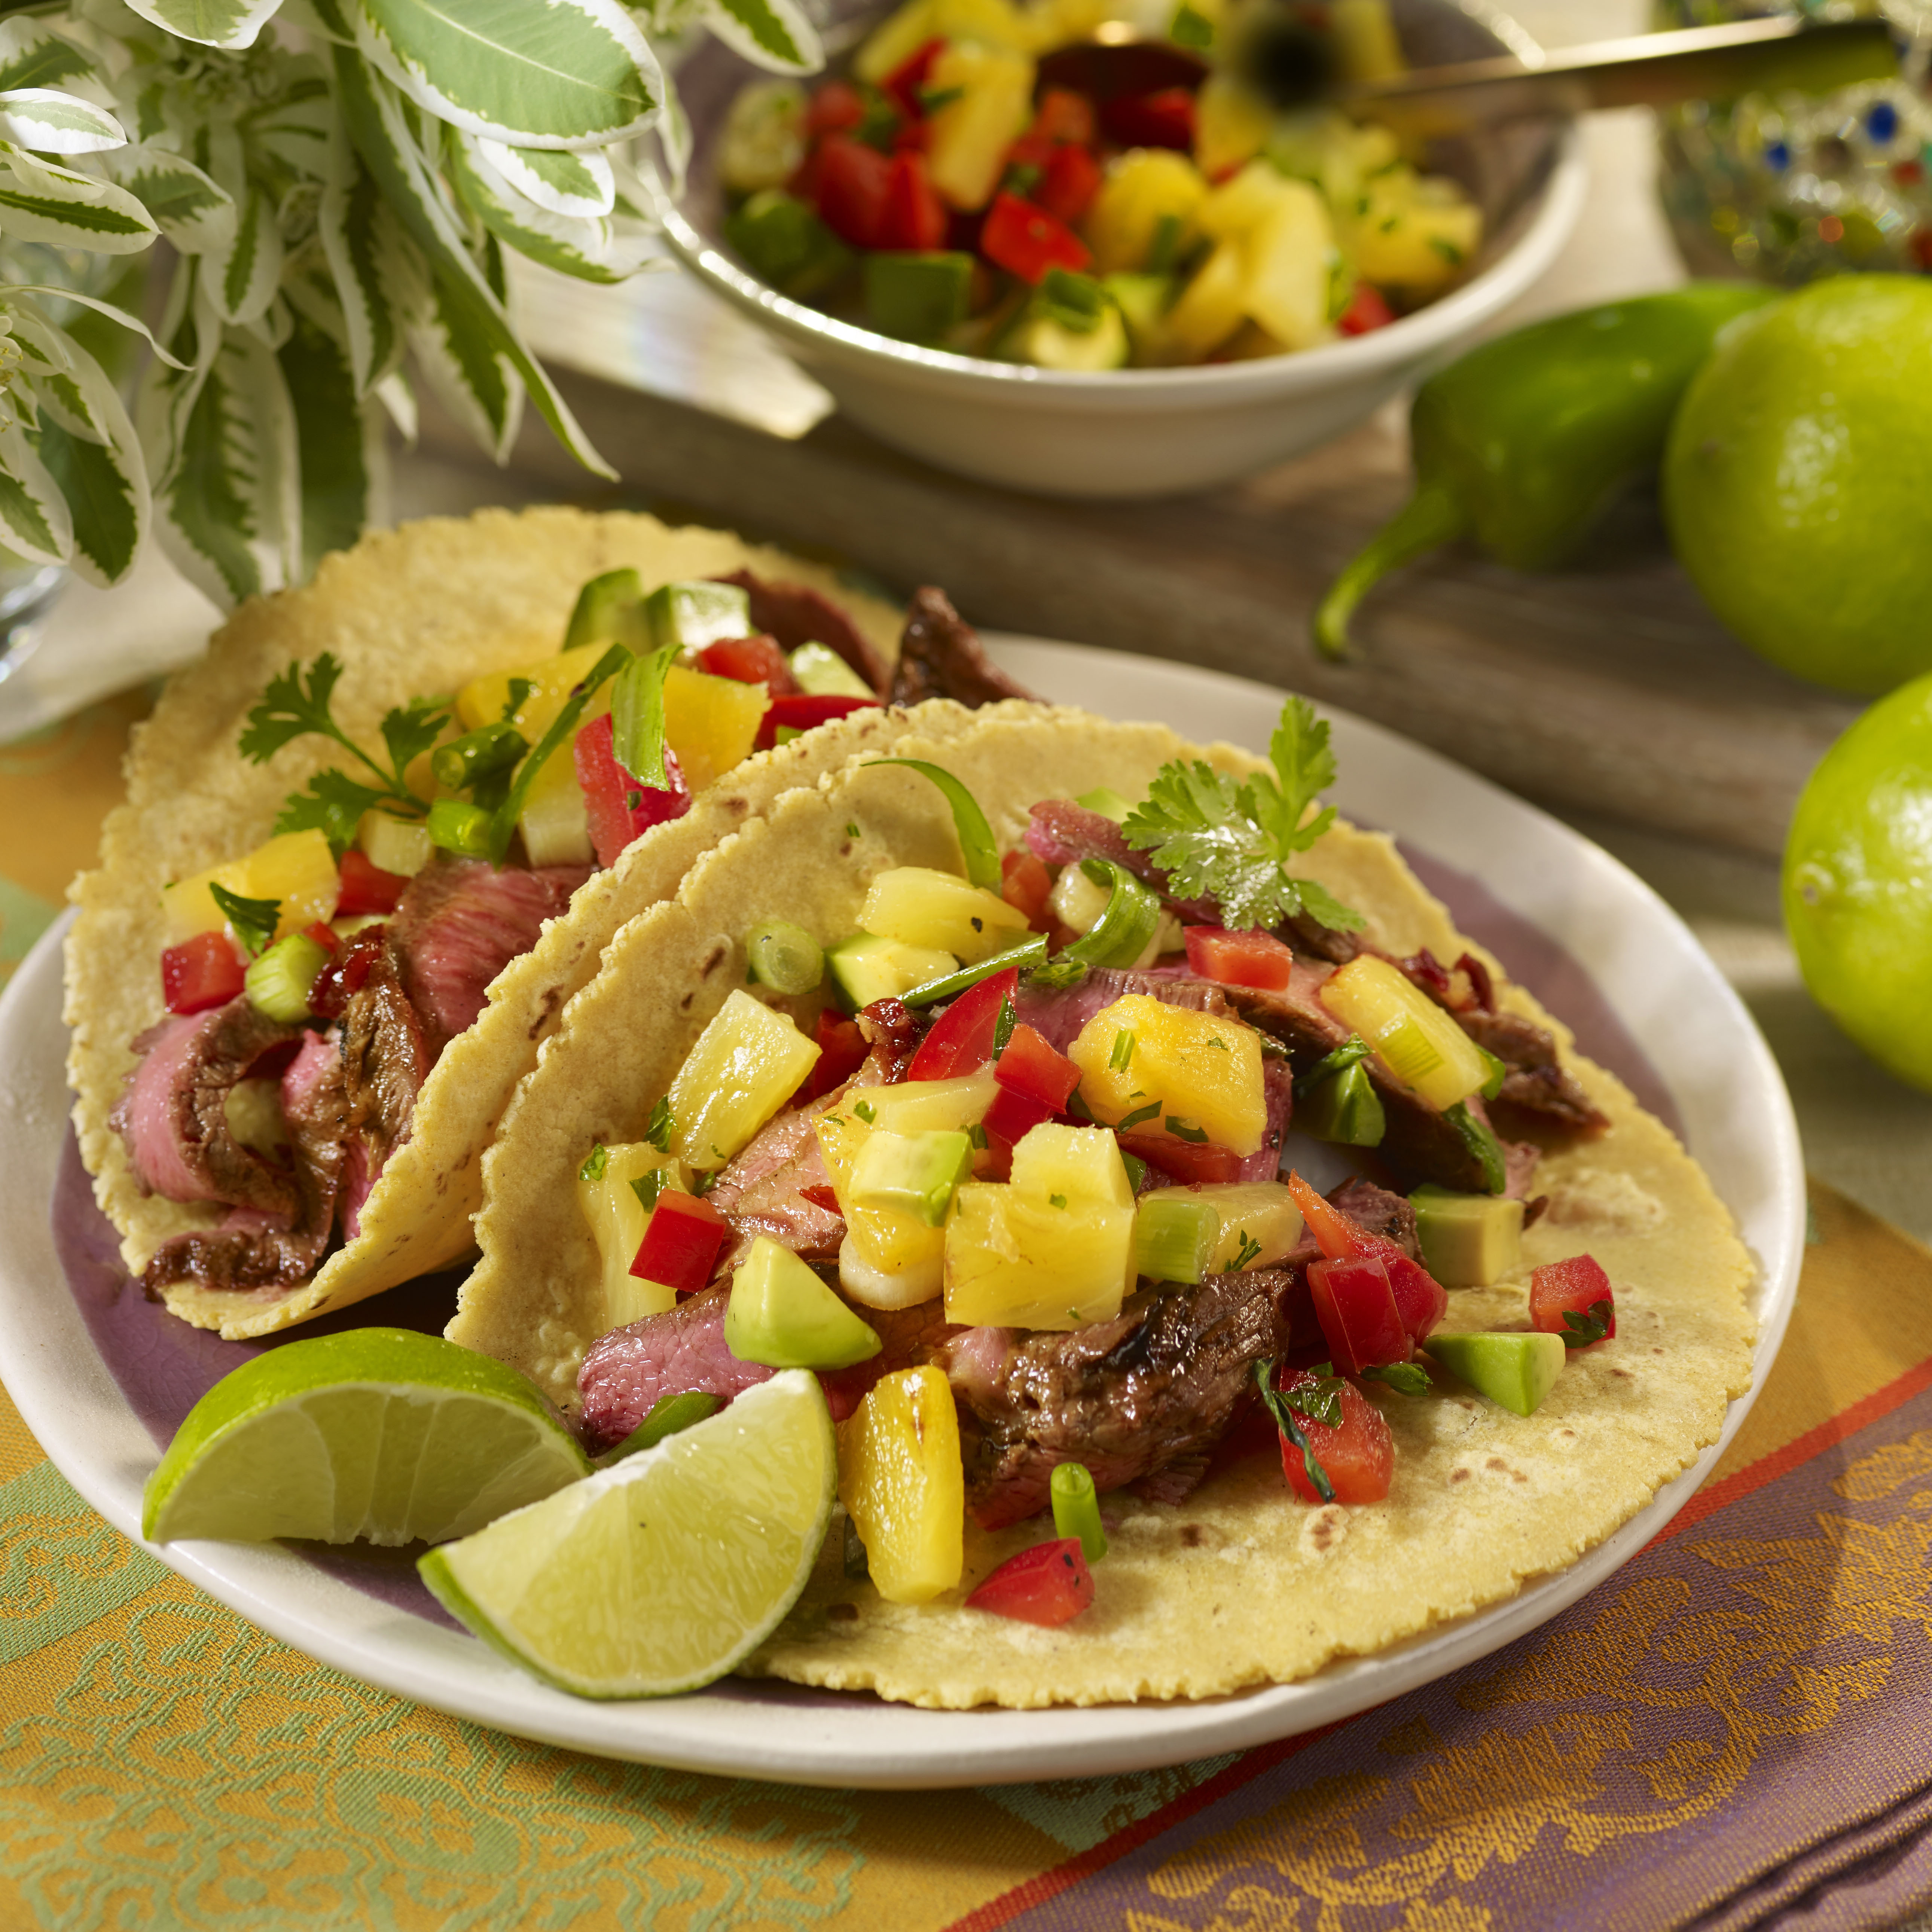 Chipotle Steak Tacos with Pineapple Avocado Salsa